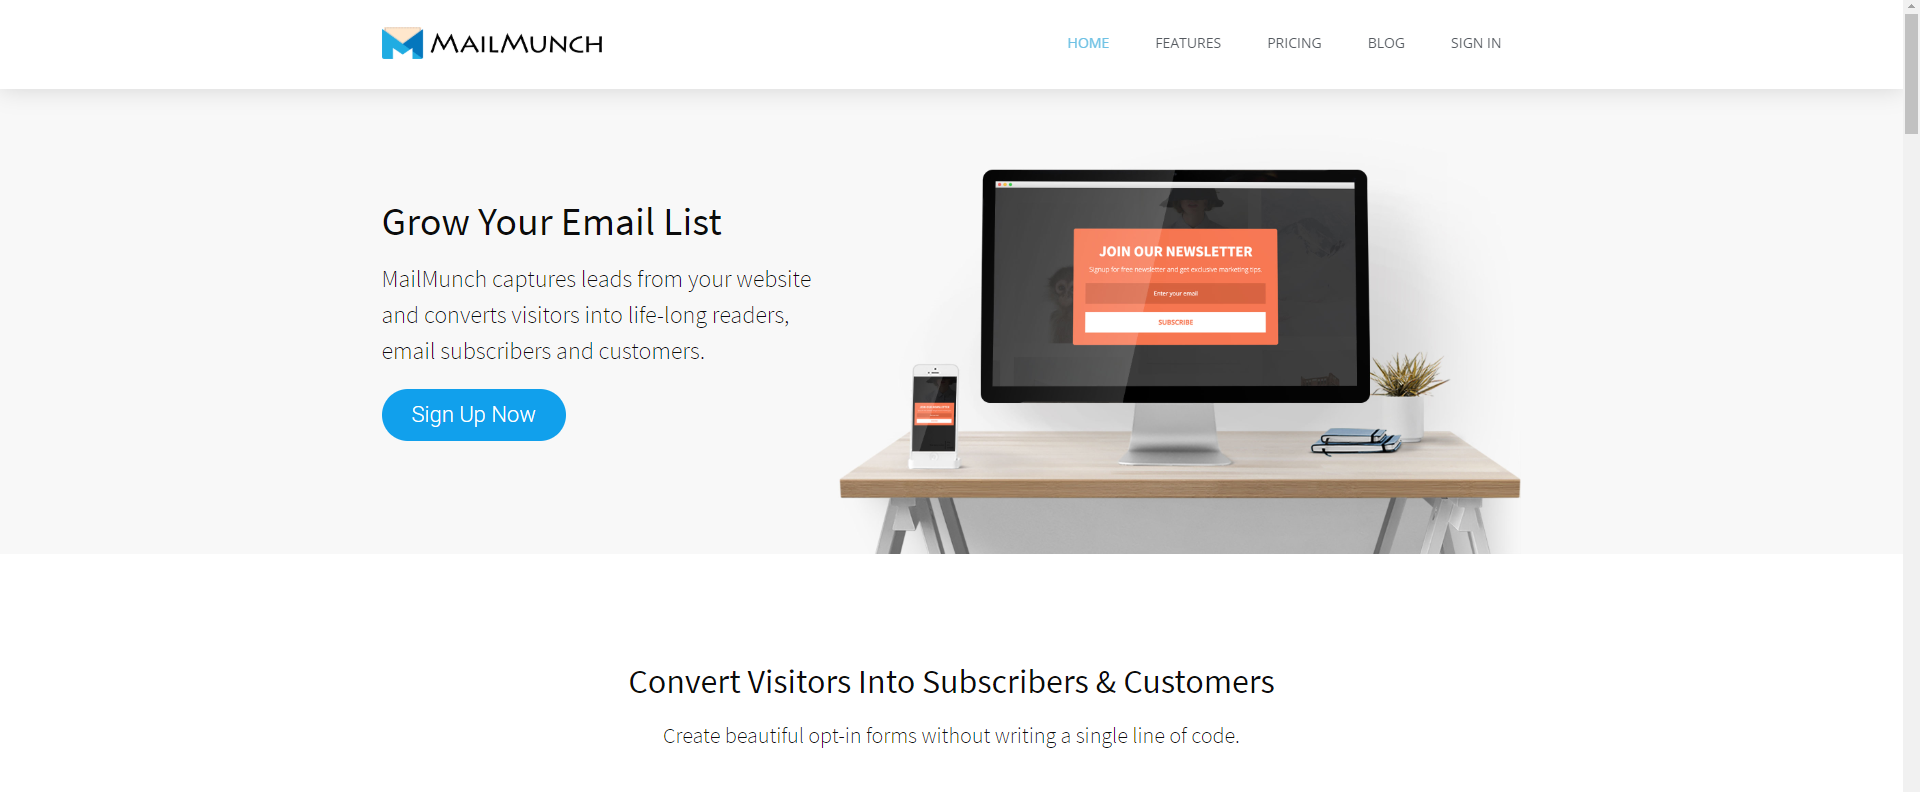 Mailmuch - Grow your email